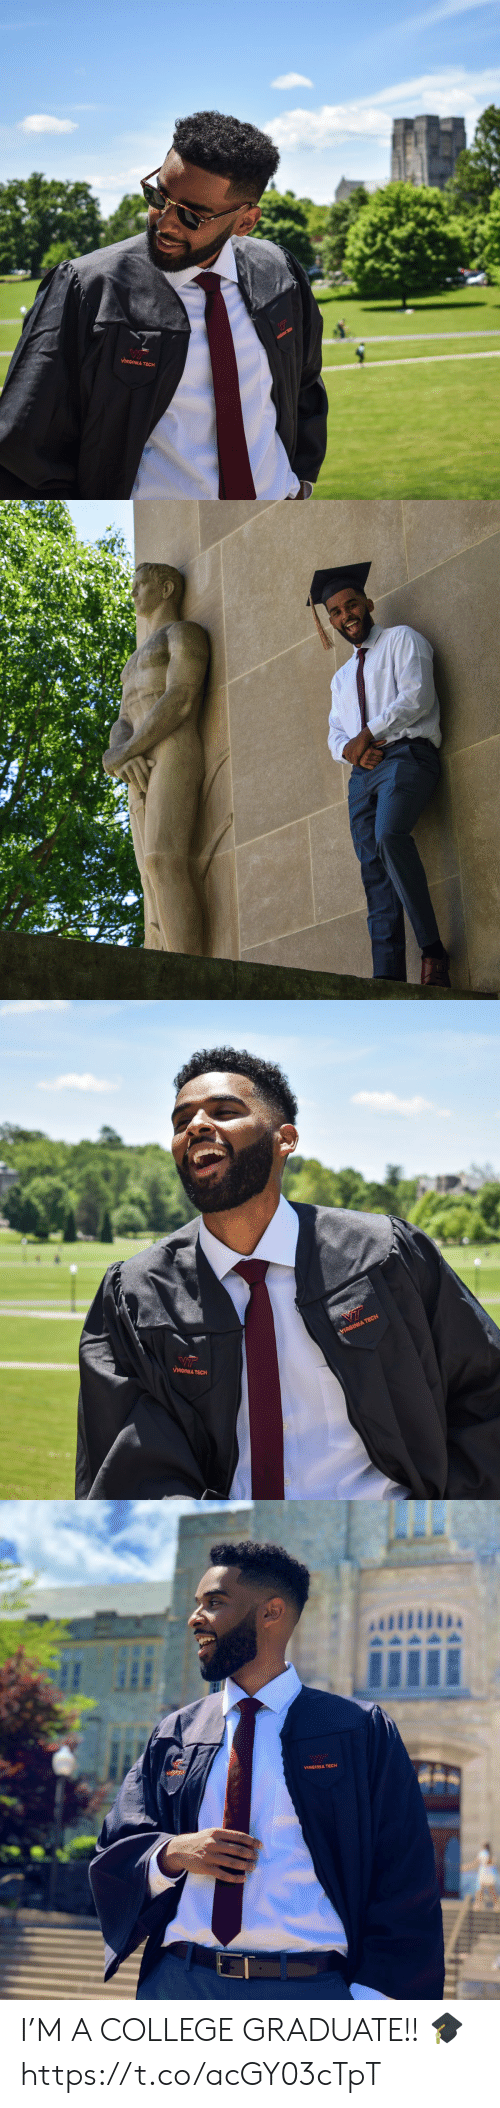 College, Funny, and Virgin: VIRGIN,A TECH   YIRGINIA TECH  MRGINA TECH   VIRGINIA TECH I'M A COLLEGE GRADUATE!! 🎓 https://t.co/acGY03cTpT